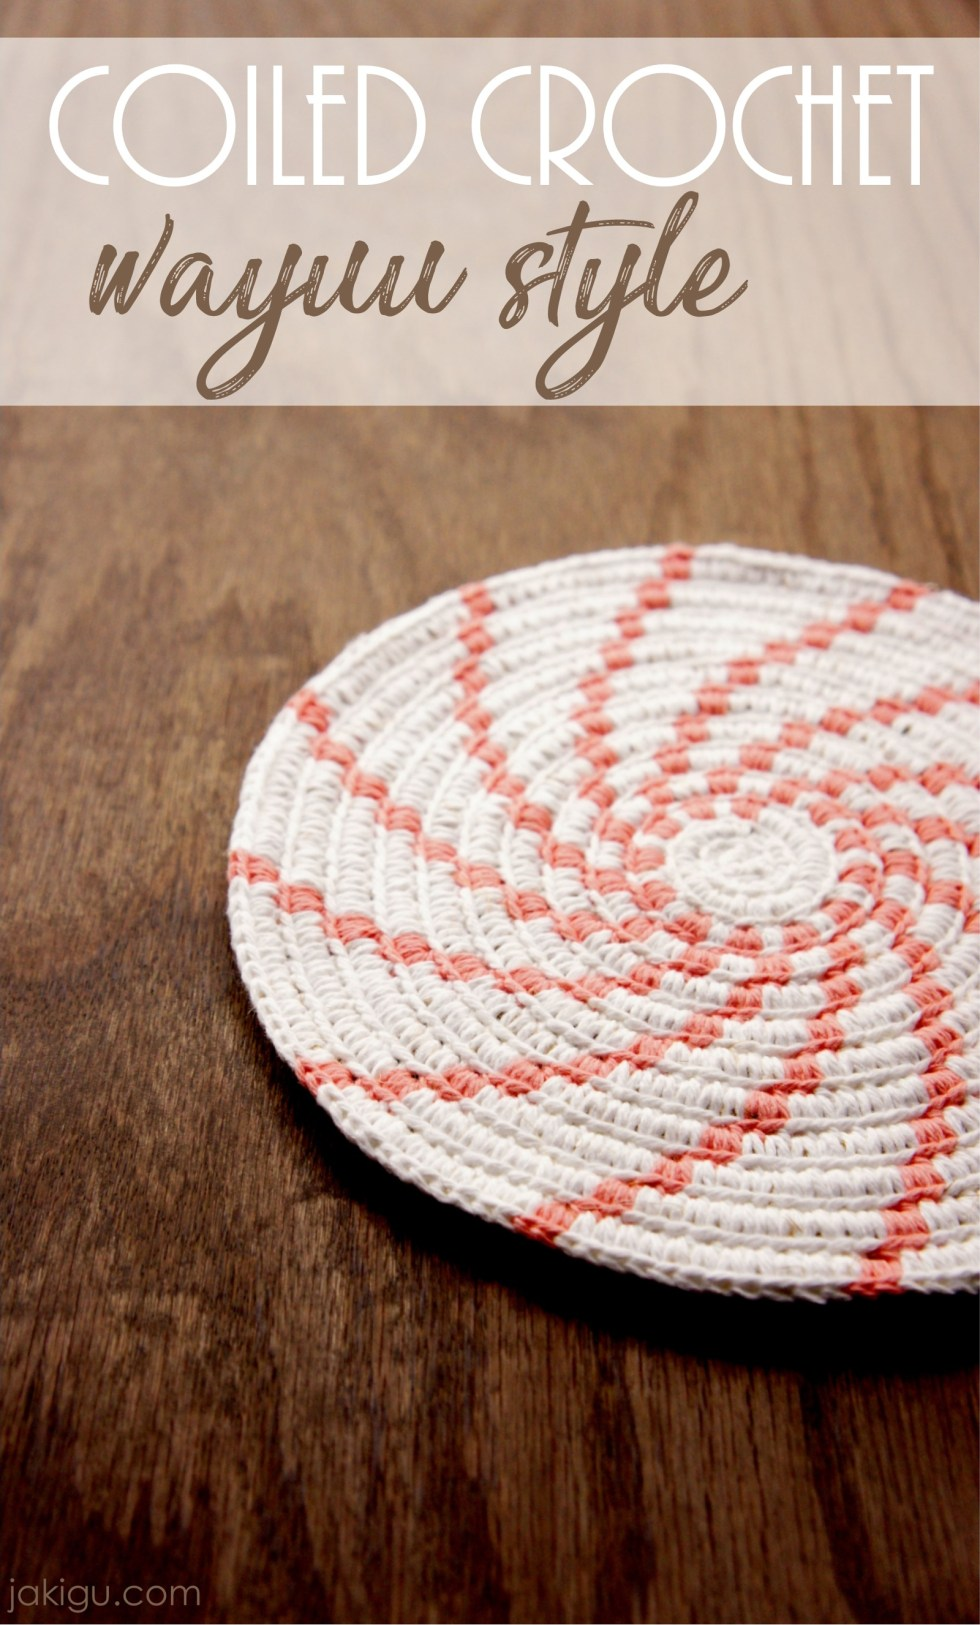 Colorful Style and Durability - basket crocheted in Wayuu style over a coil